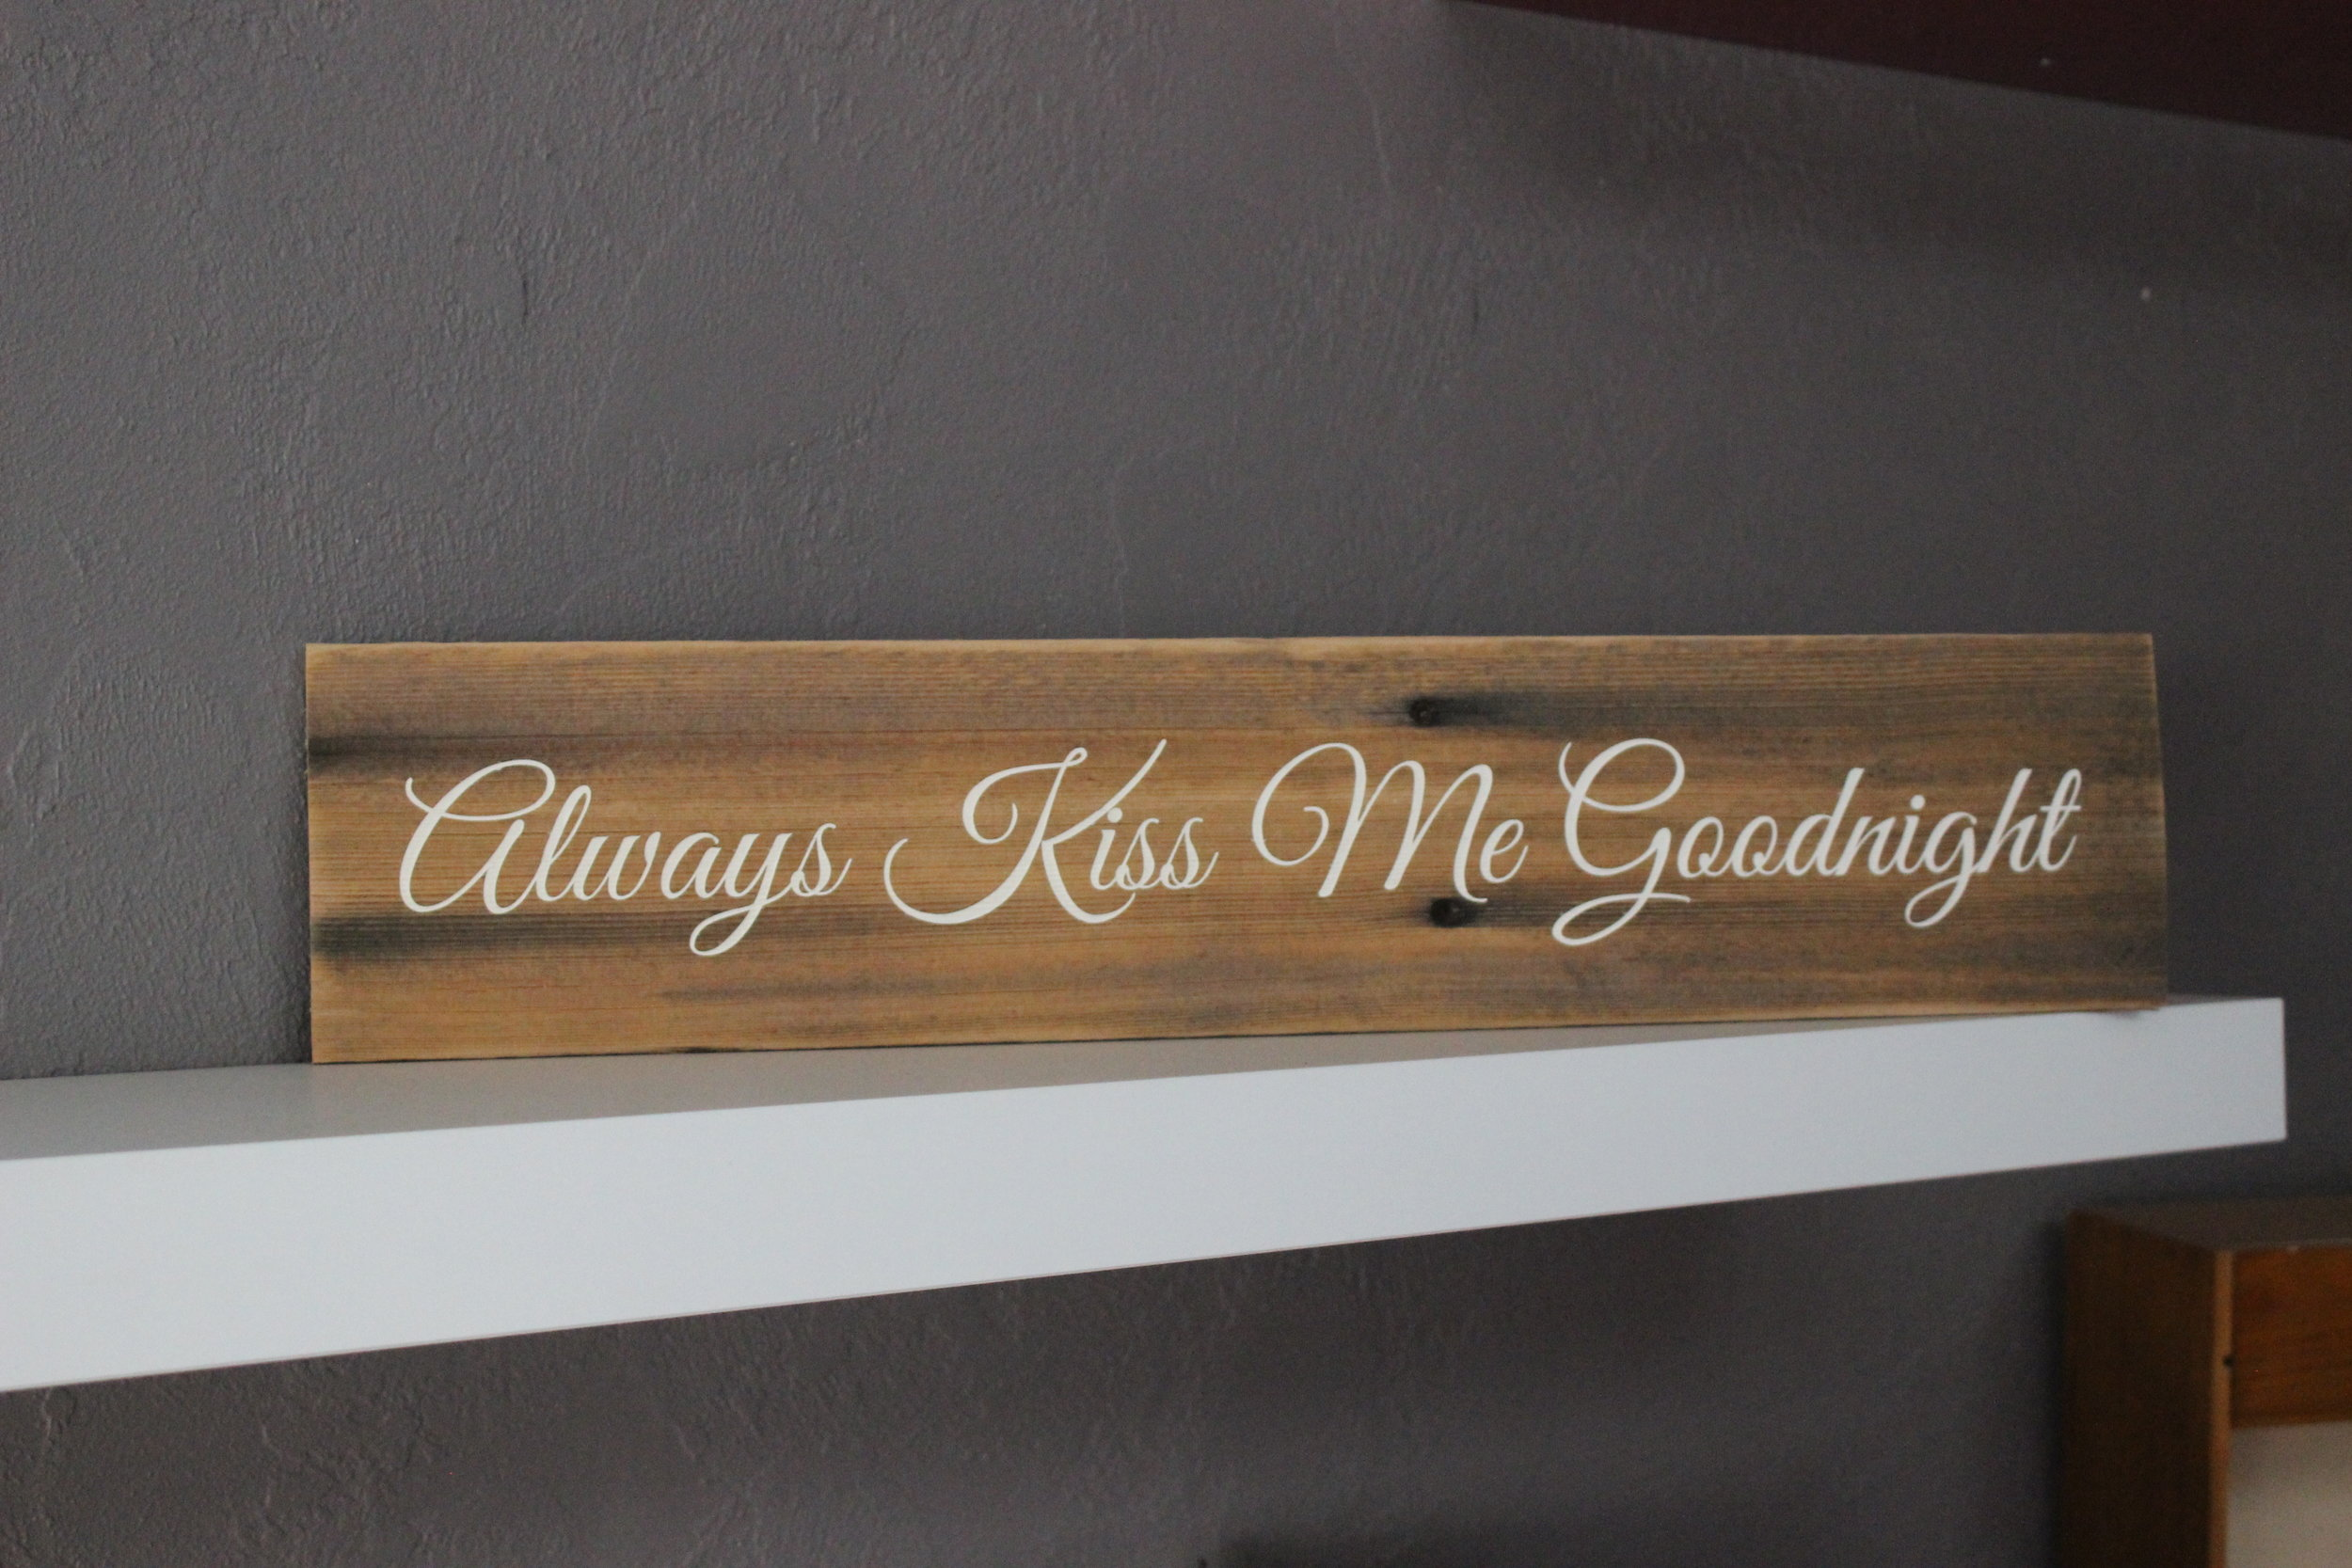 Home decor/signs